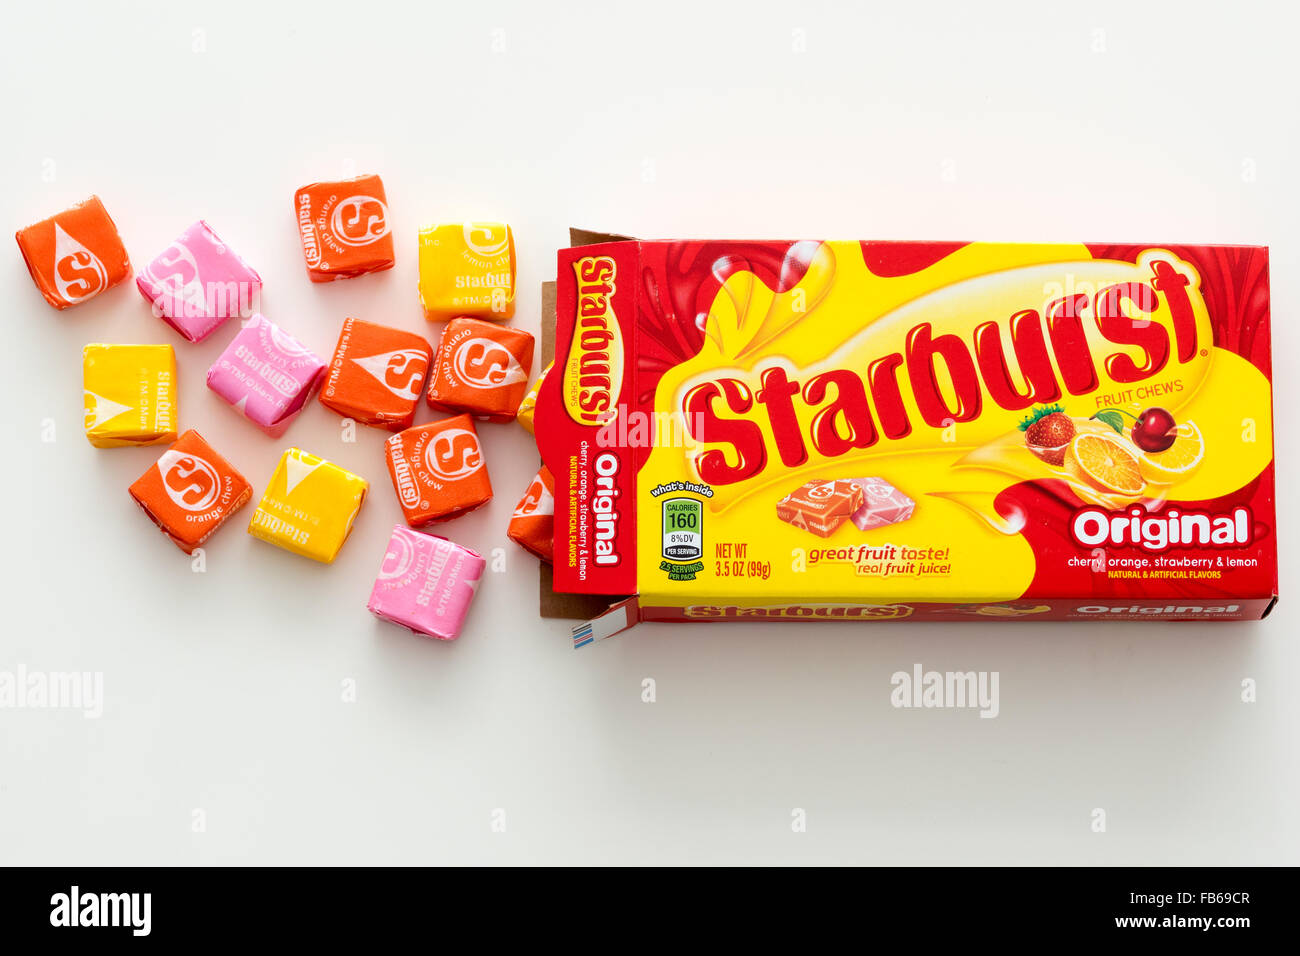 A box of Starburst candy, a fruit-flavored candy